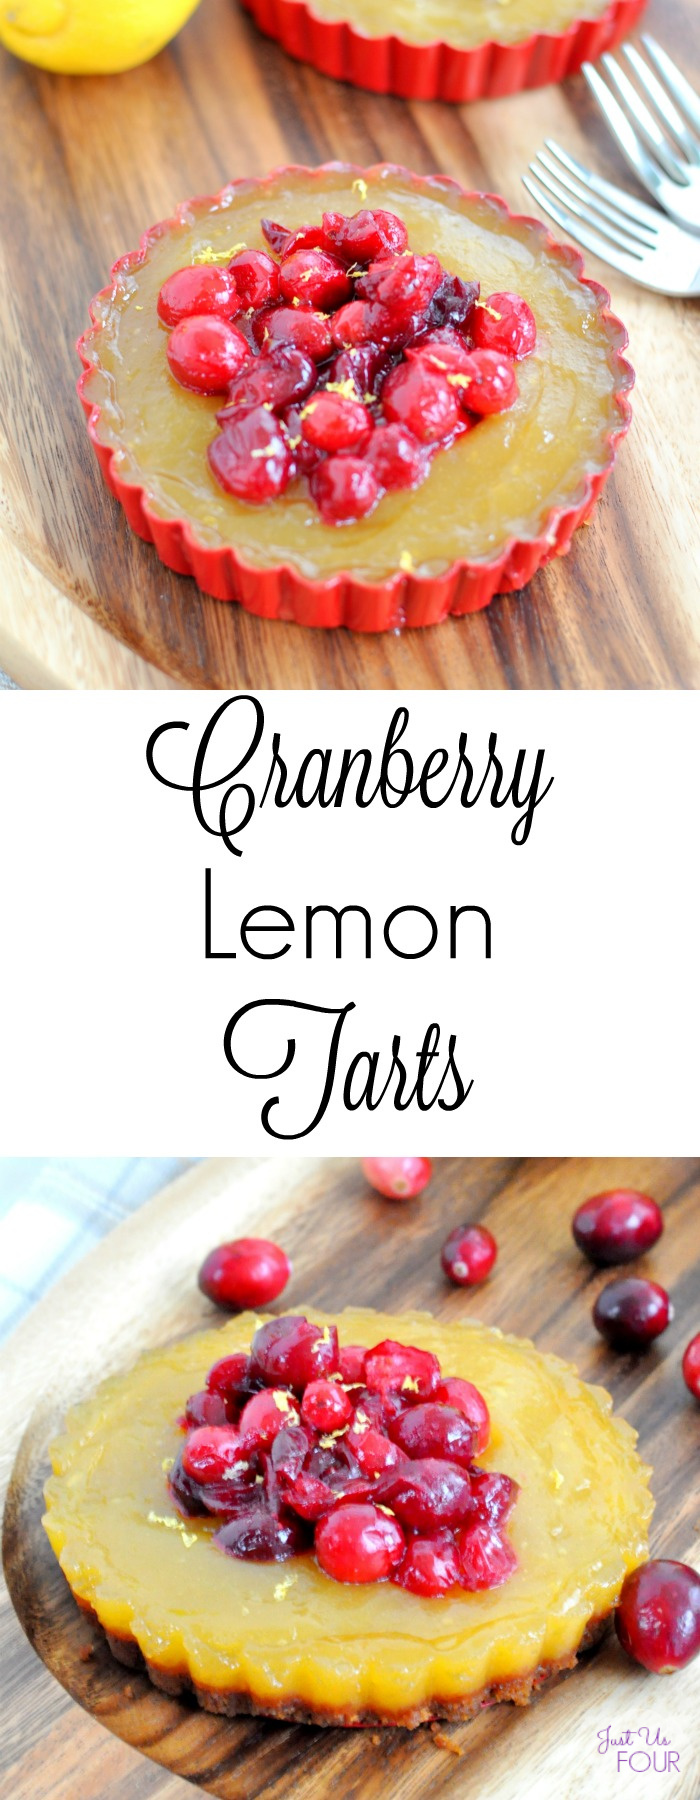 Cranberry Lemon Tarts are a great holiday dessert that can easily be made ahead of time!